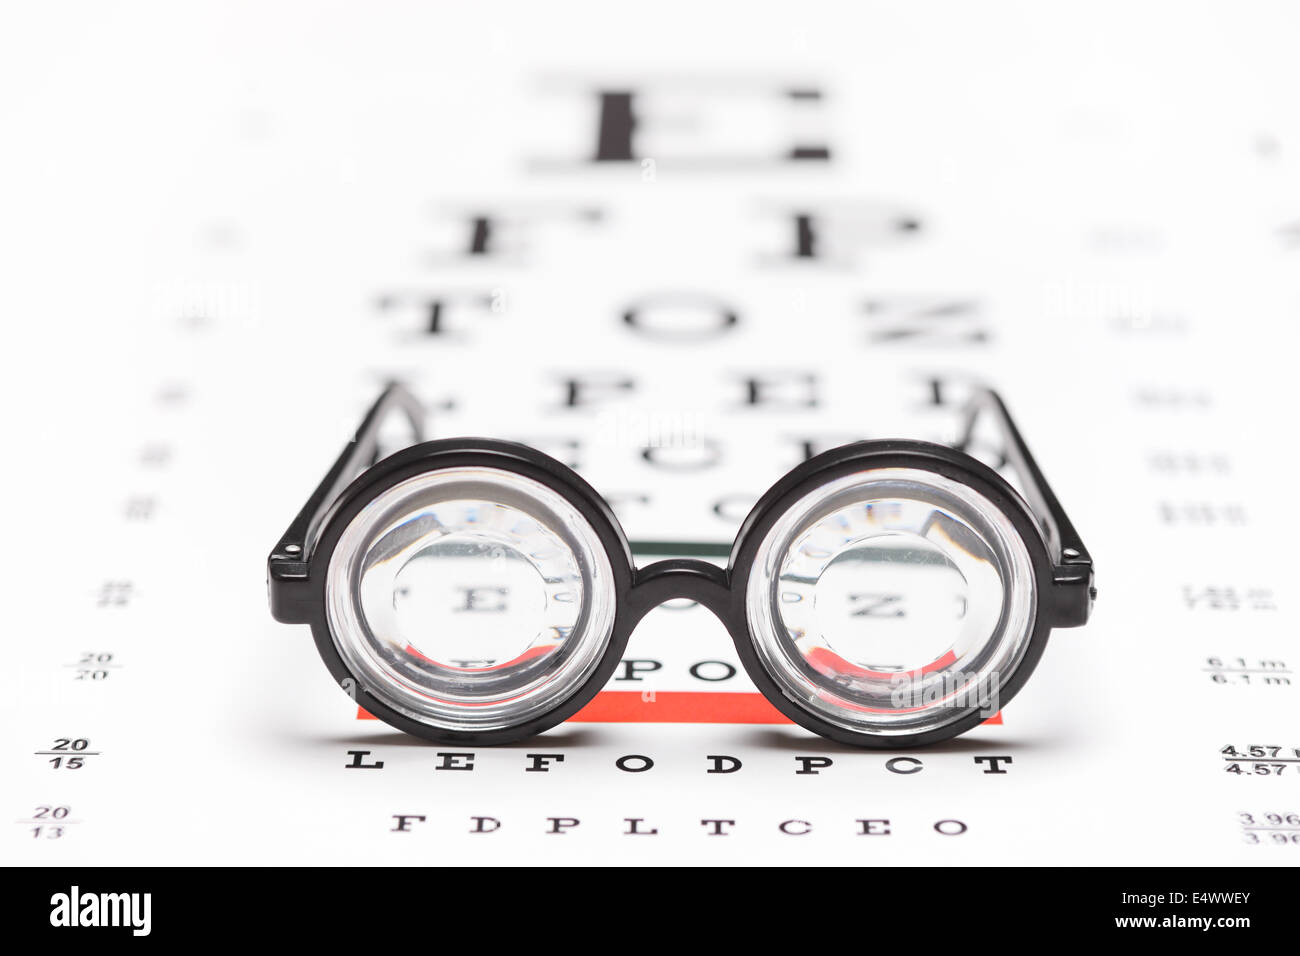 Studio shot of a pair of nerdy glasses on an eye chart with the focus on the glasses isolated on white background - Stock Image